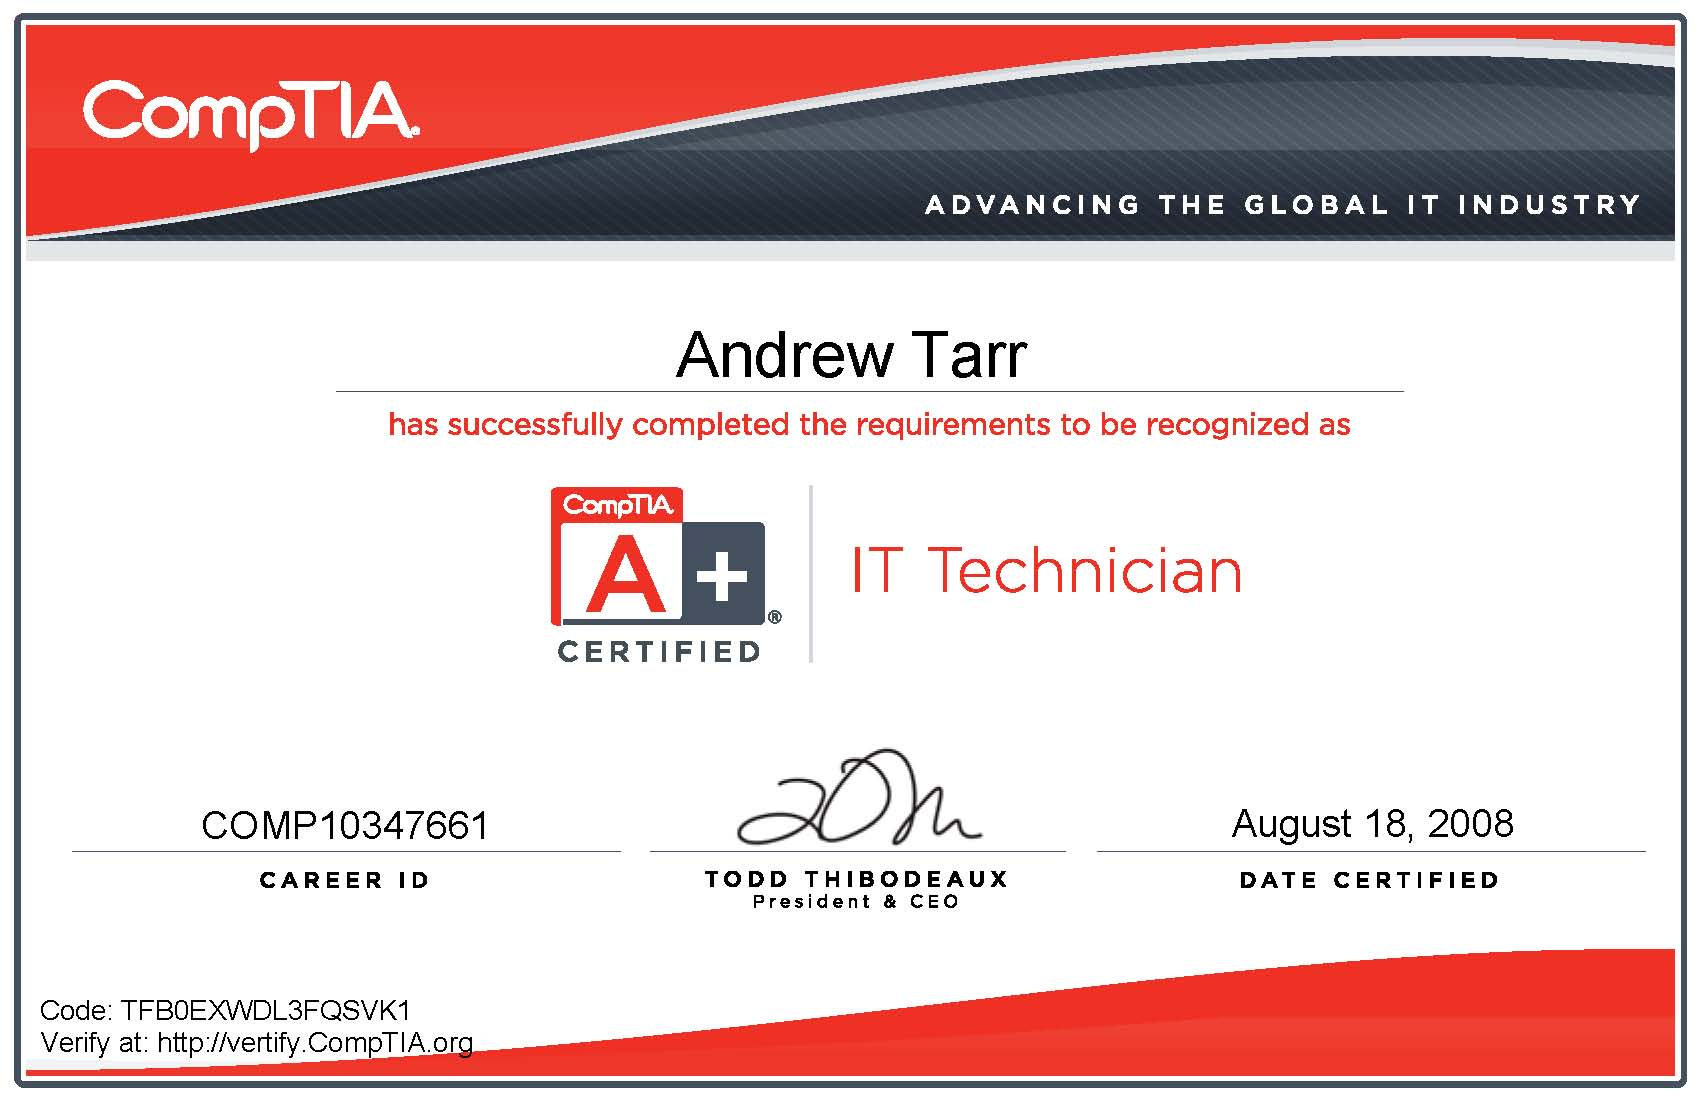 Map Your Career Ahead With This Complete CompTIA Certification Guide!